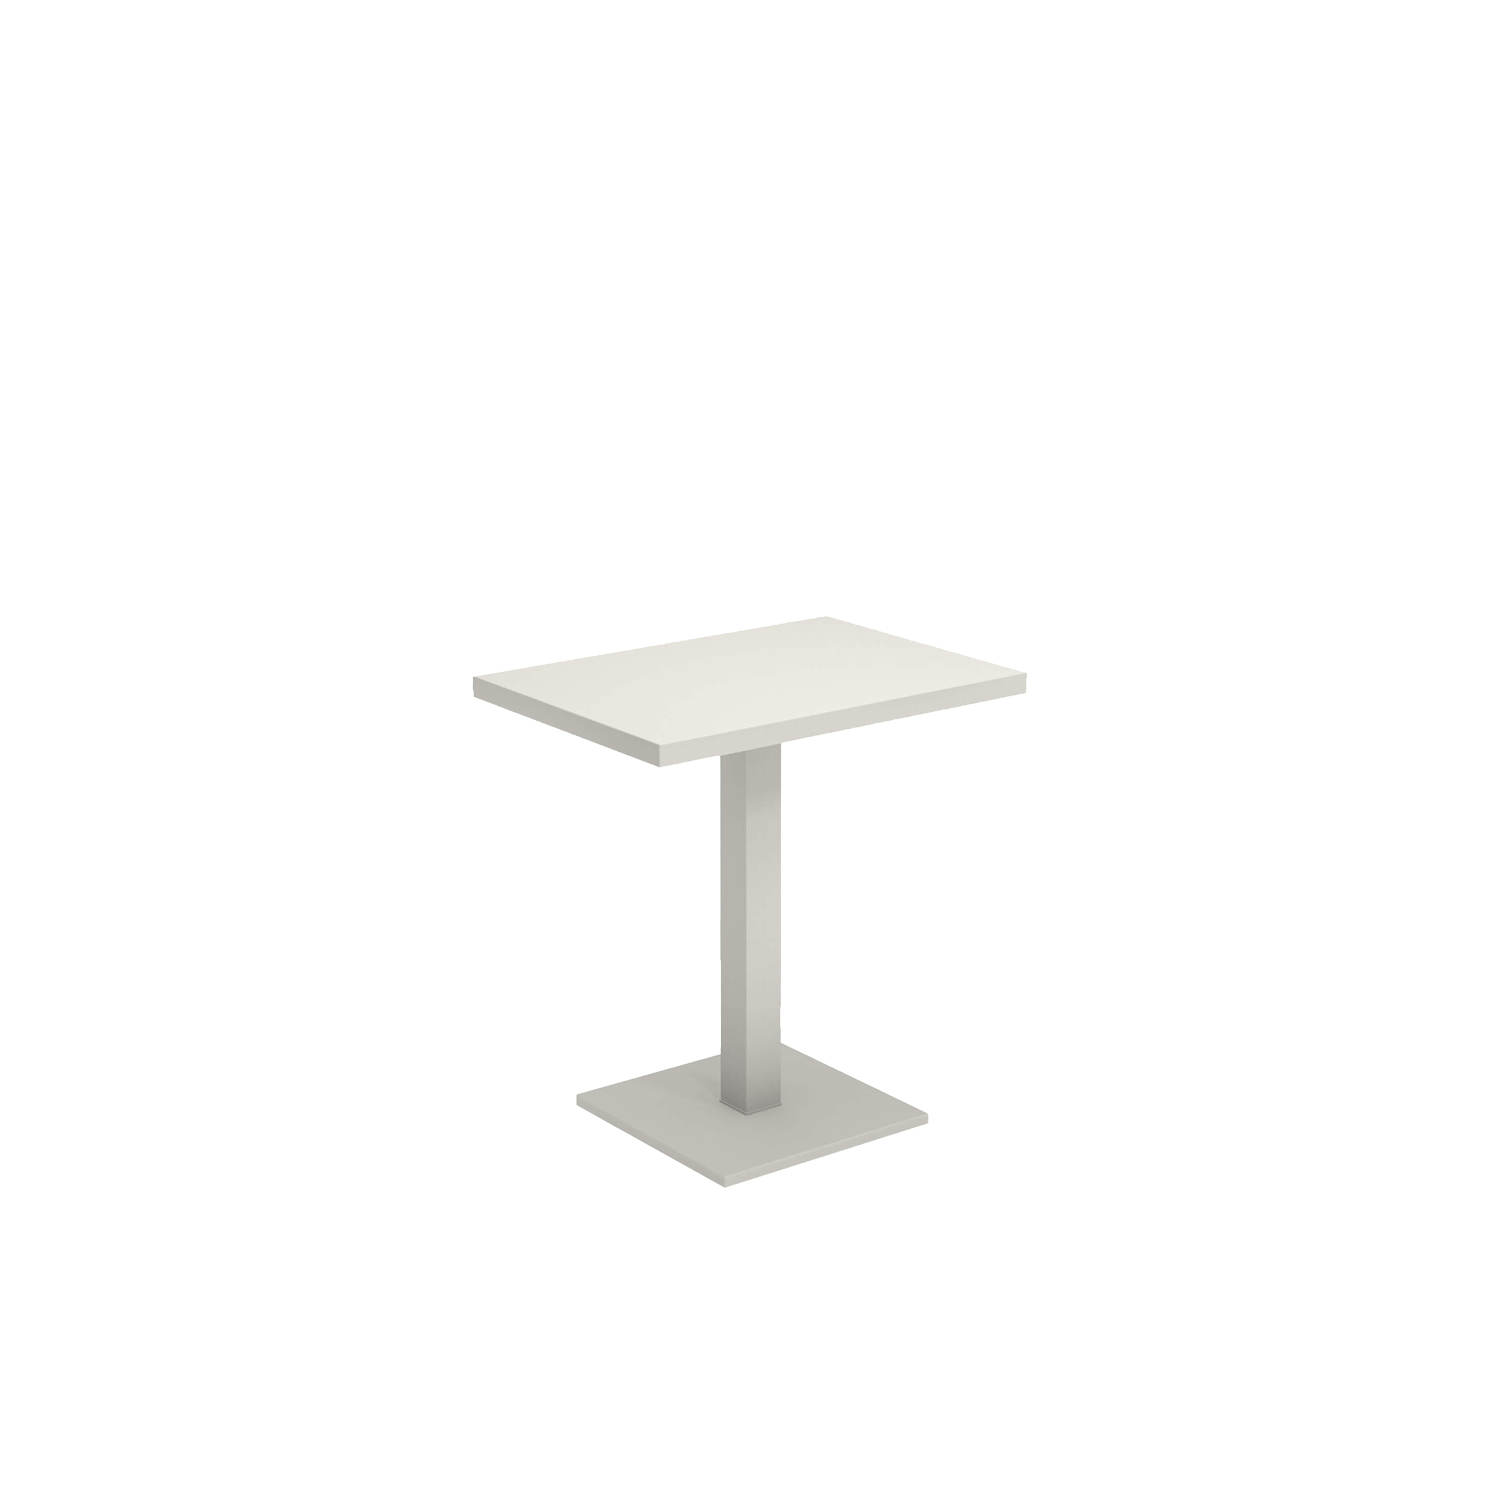 Round Square Table - Round is a collection defined by its search for structural balance and soft lines, an interpretation of outdoor space that conveys stylistic but essential refinement. Clean and basic shapes mark the range of elements that make up this collection. This table comes in three sizes and is made from steel.   | Matter of Stuff